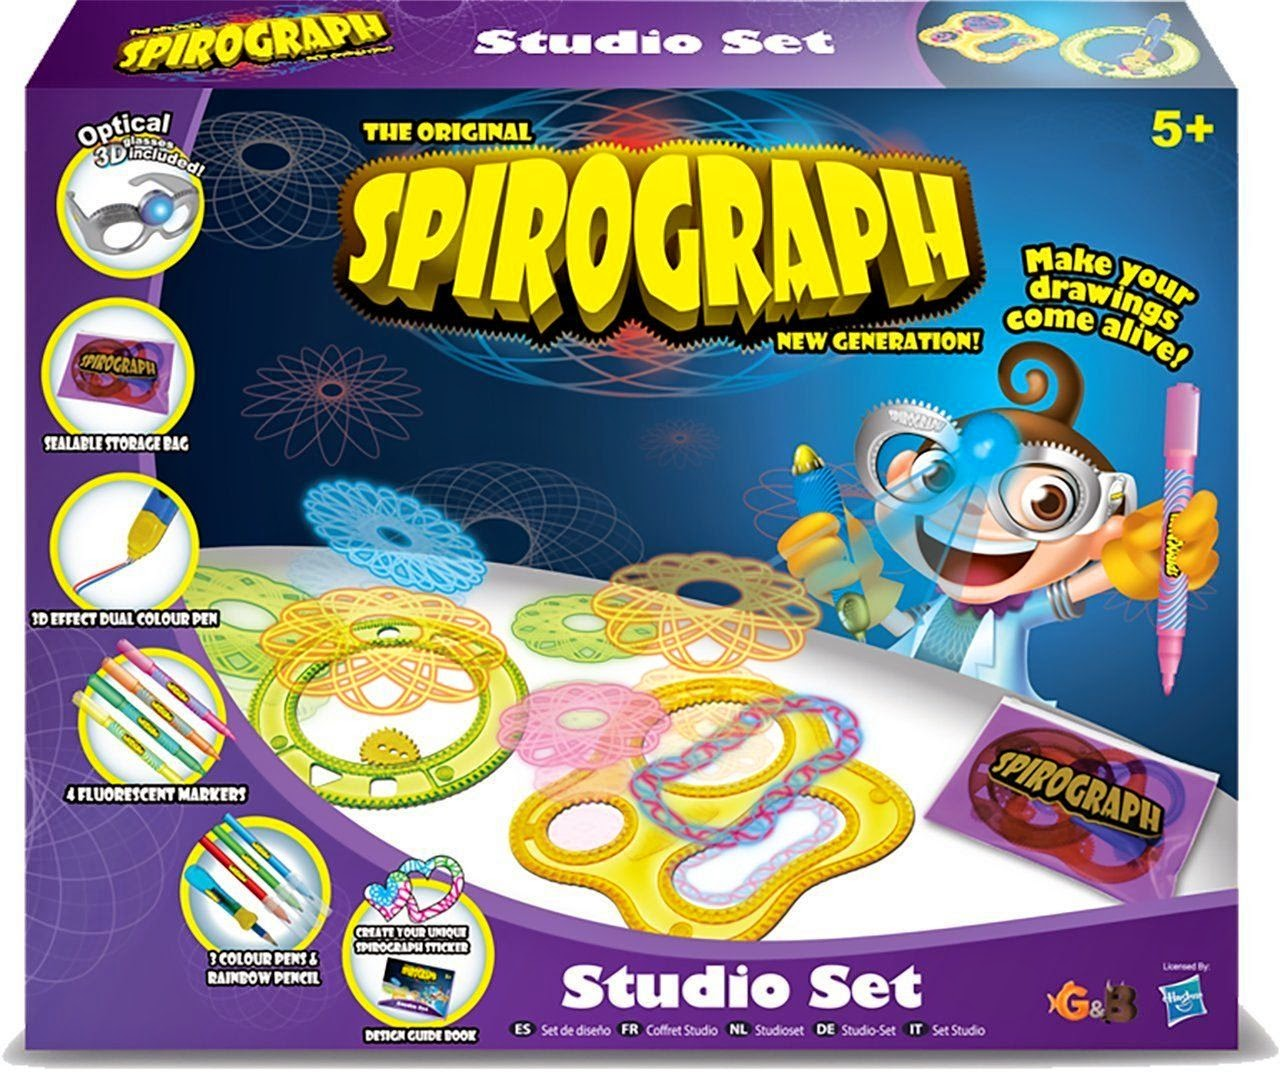 Win Spirograph Optical 3D Studio Set